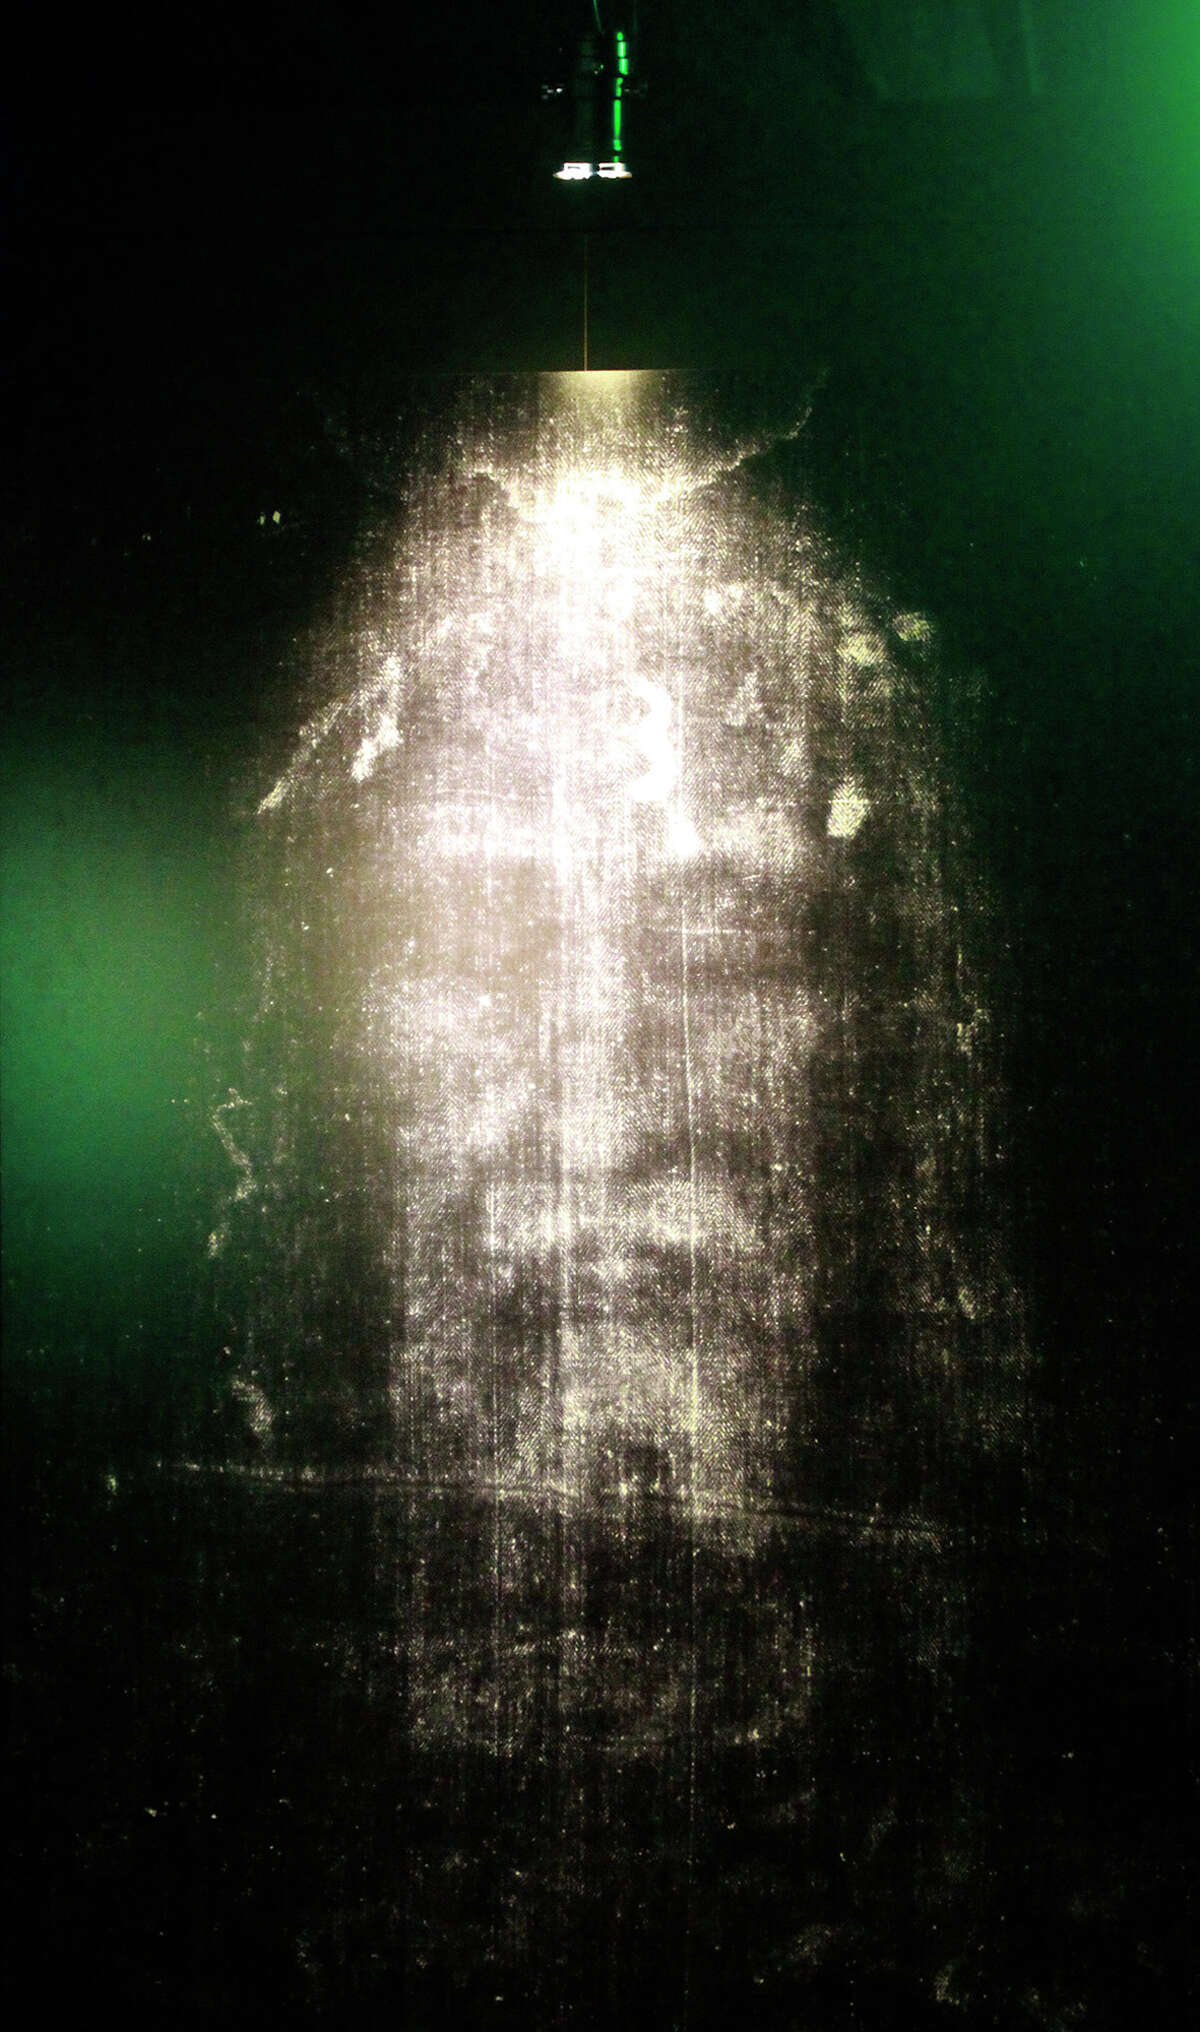 An image of the Shroud of Turin is on display at an exhibit that runs through Jan. 25 at 416 Dolorosa St. downtown.